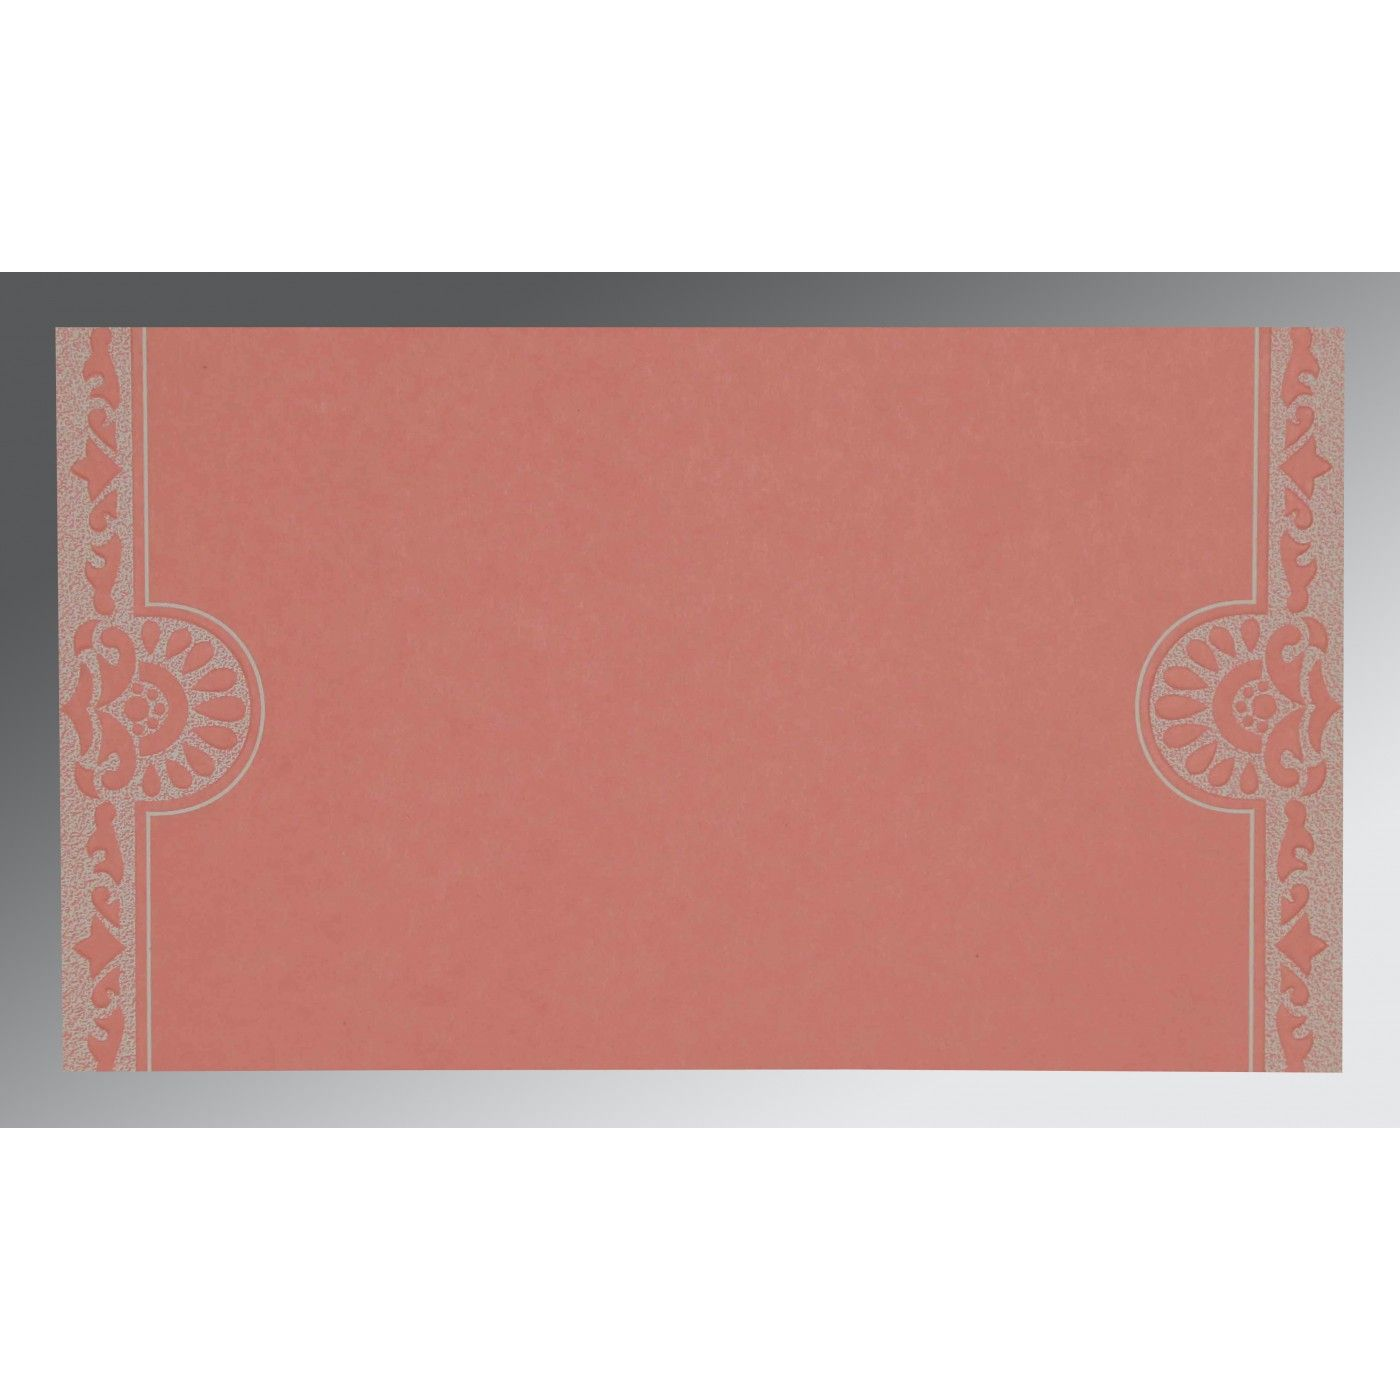 OFF-WHITE PINK SHIMMERY FLORAL THEMED - SCREEN PRINTED WEDDING CARD : CIN-8227M - IndianWeddingCards